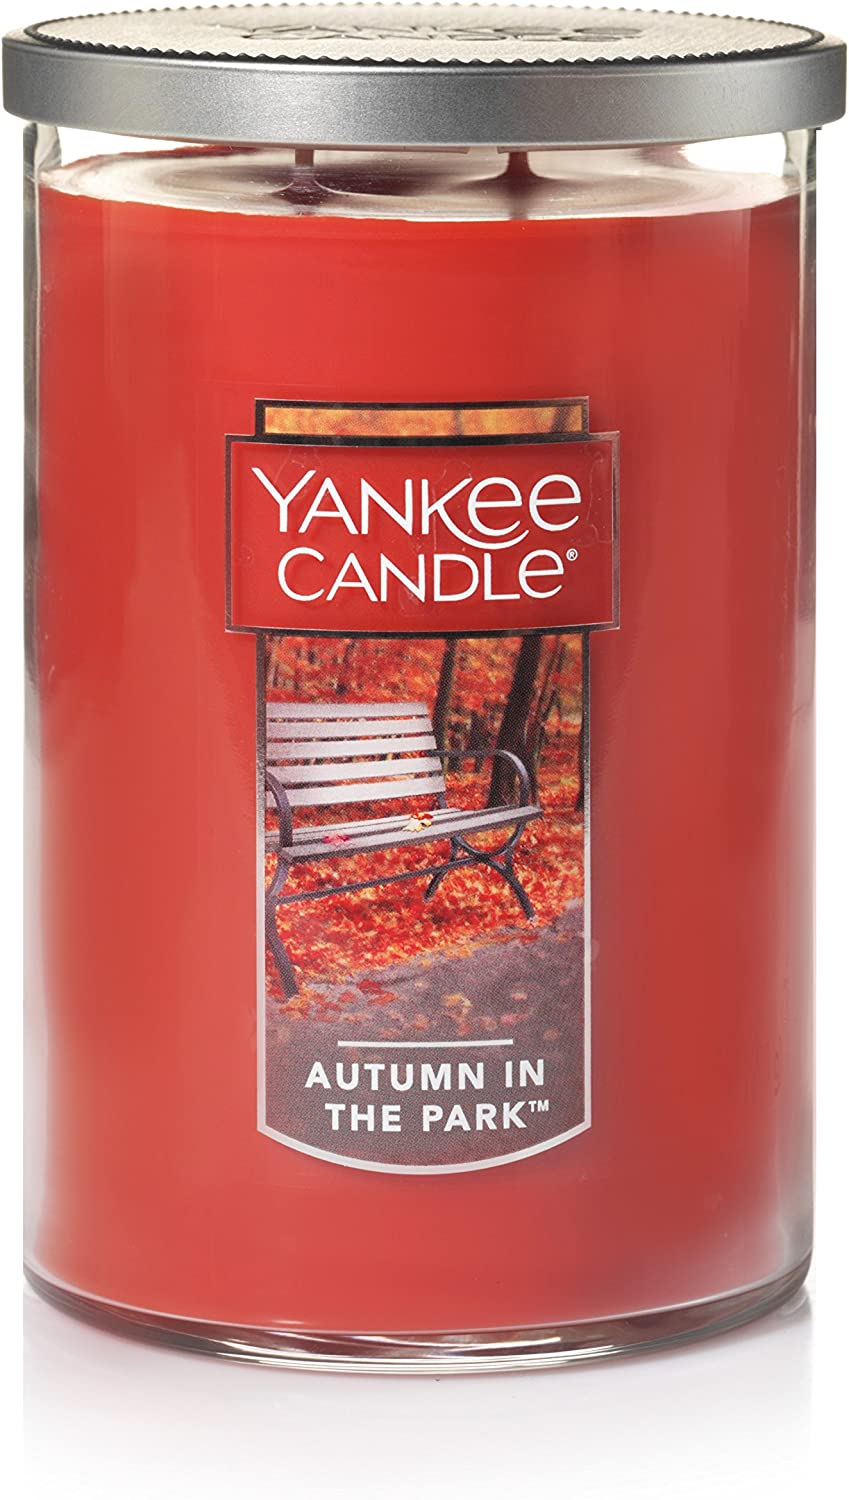 Yankee Candle Lot of 6 Autumn in the Park Votives